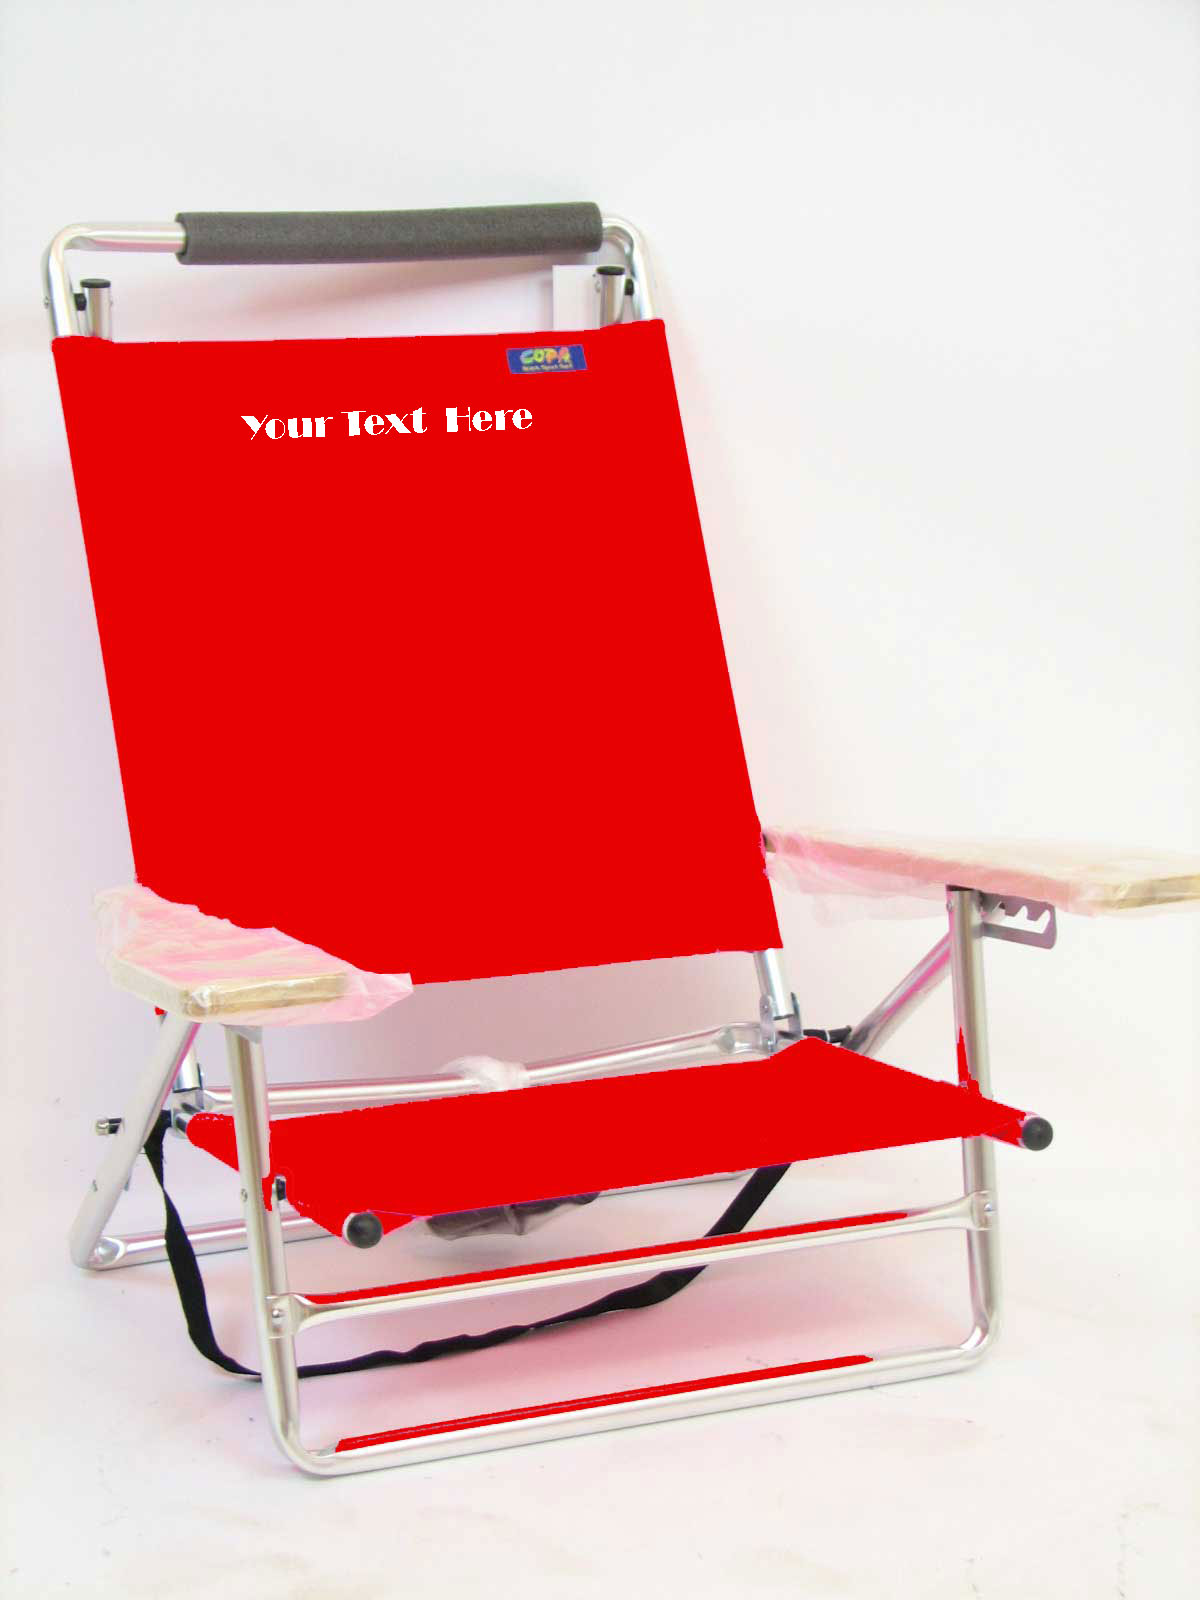 IMPRINTED Personalized Deluxe Lay Flat 5 Position Beach Chair Personalized Chair Sale